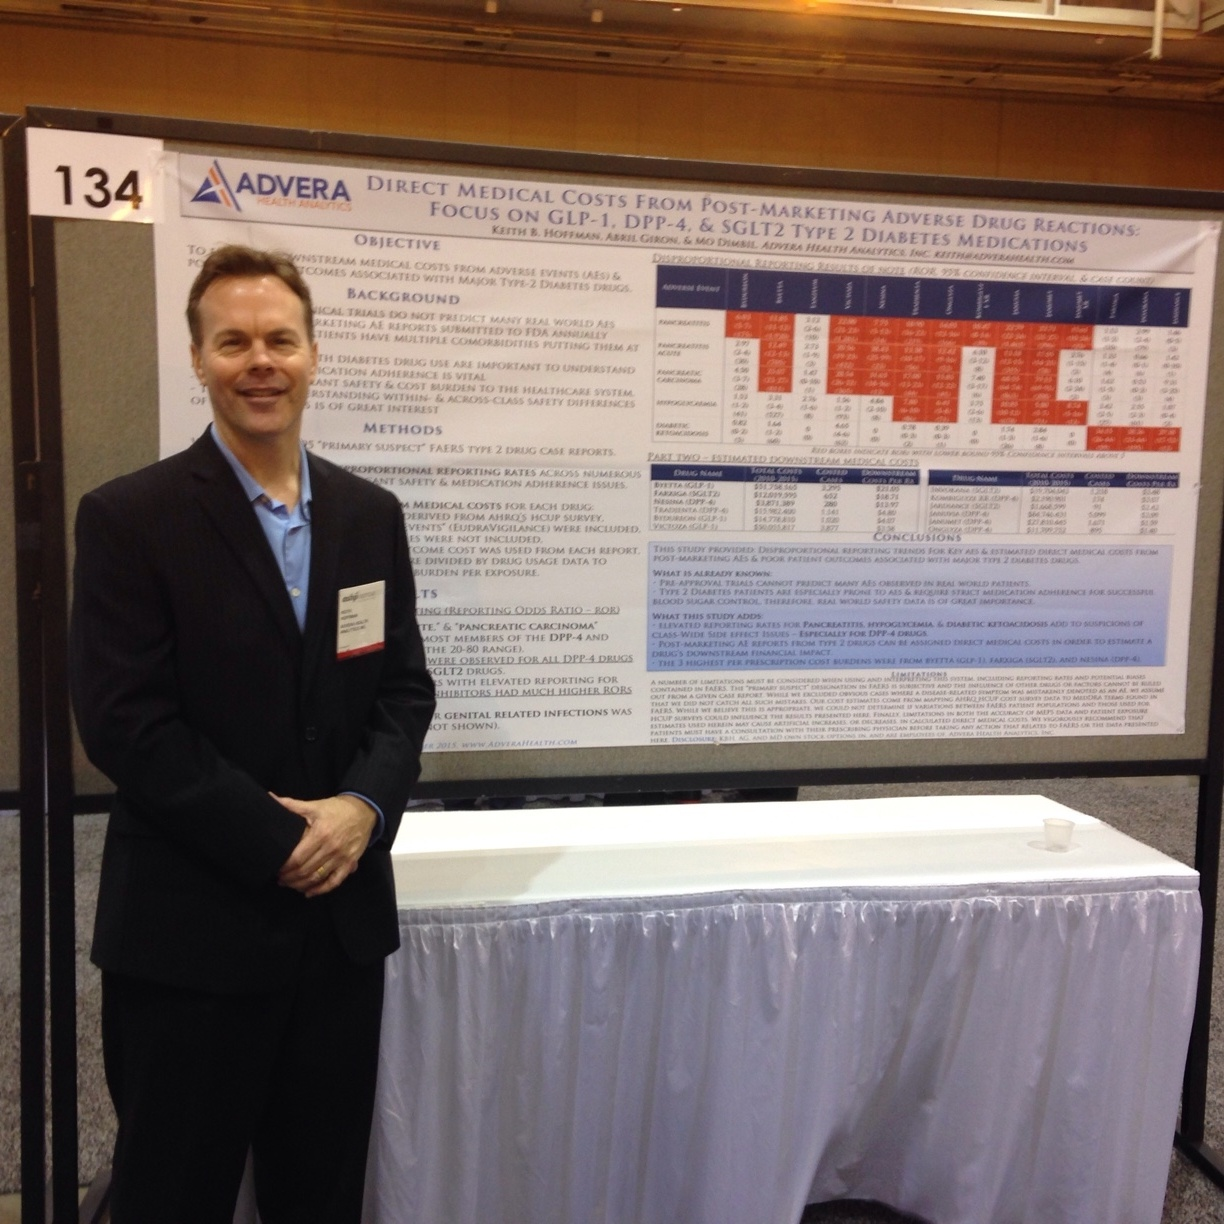 ashp_keith_with_poster-532765-edited.jpg